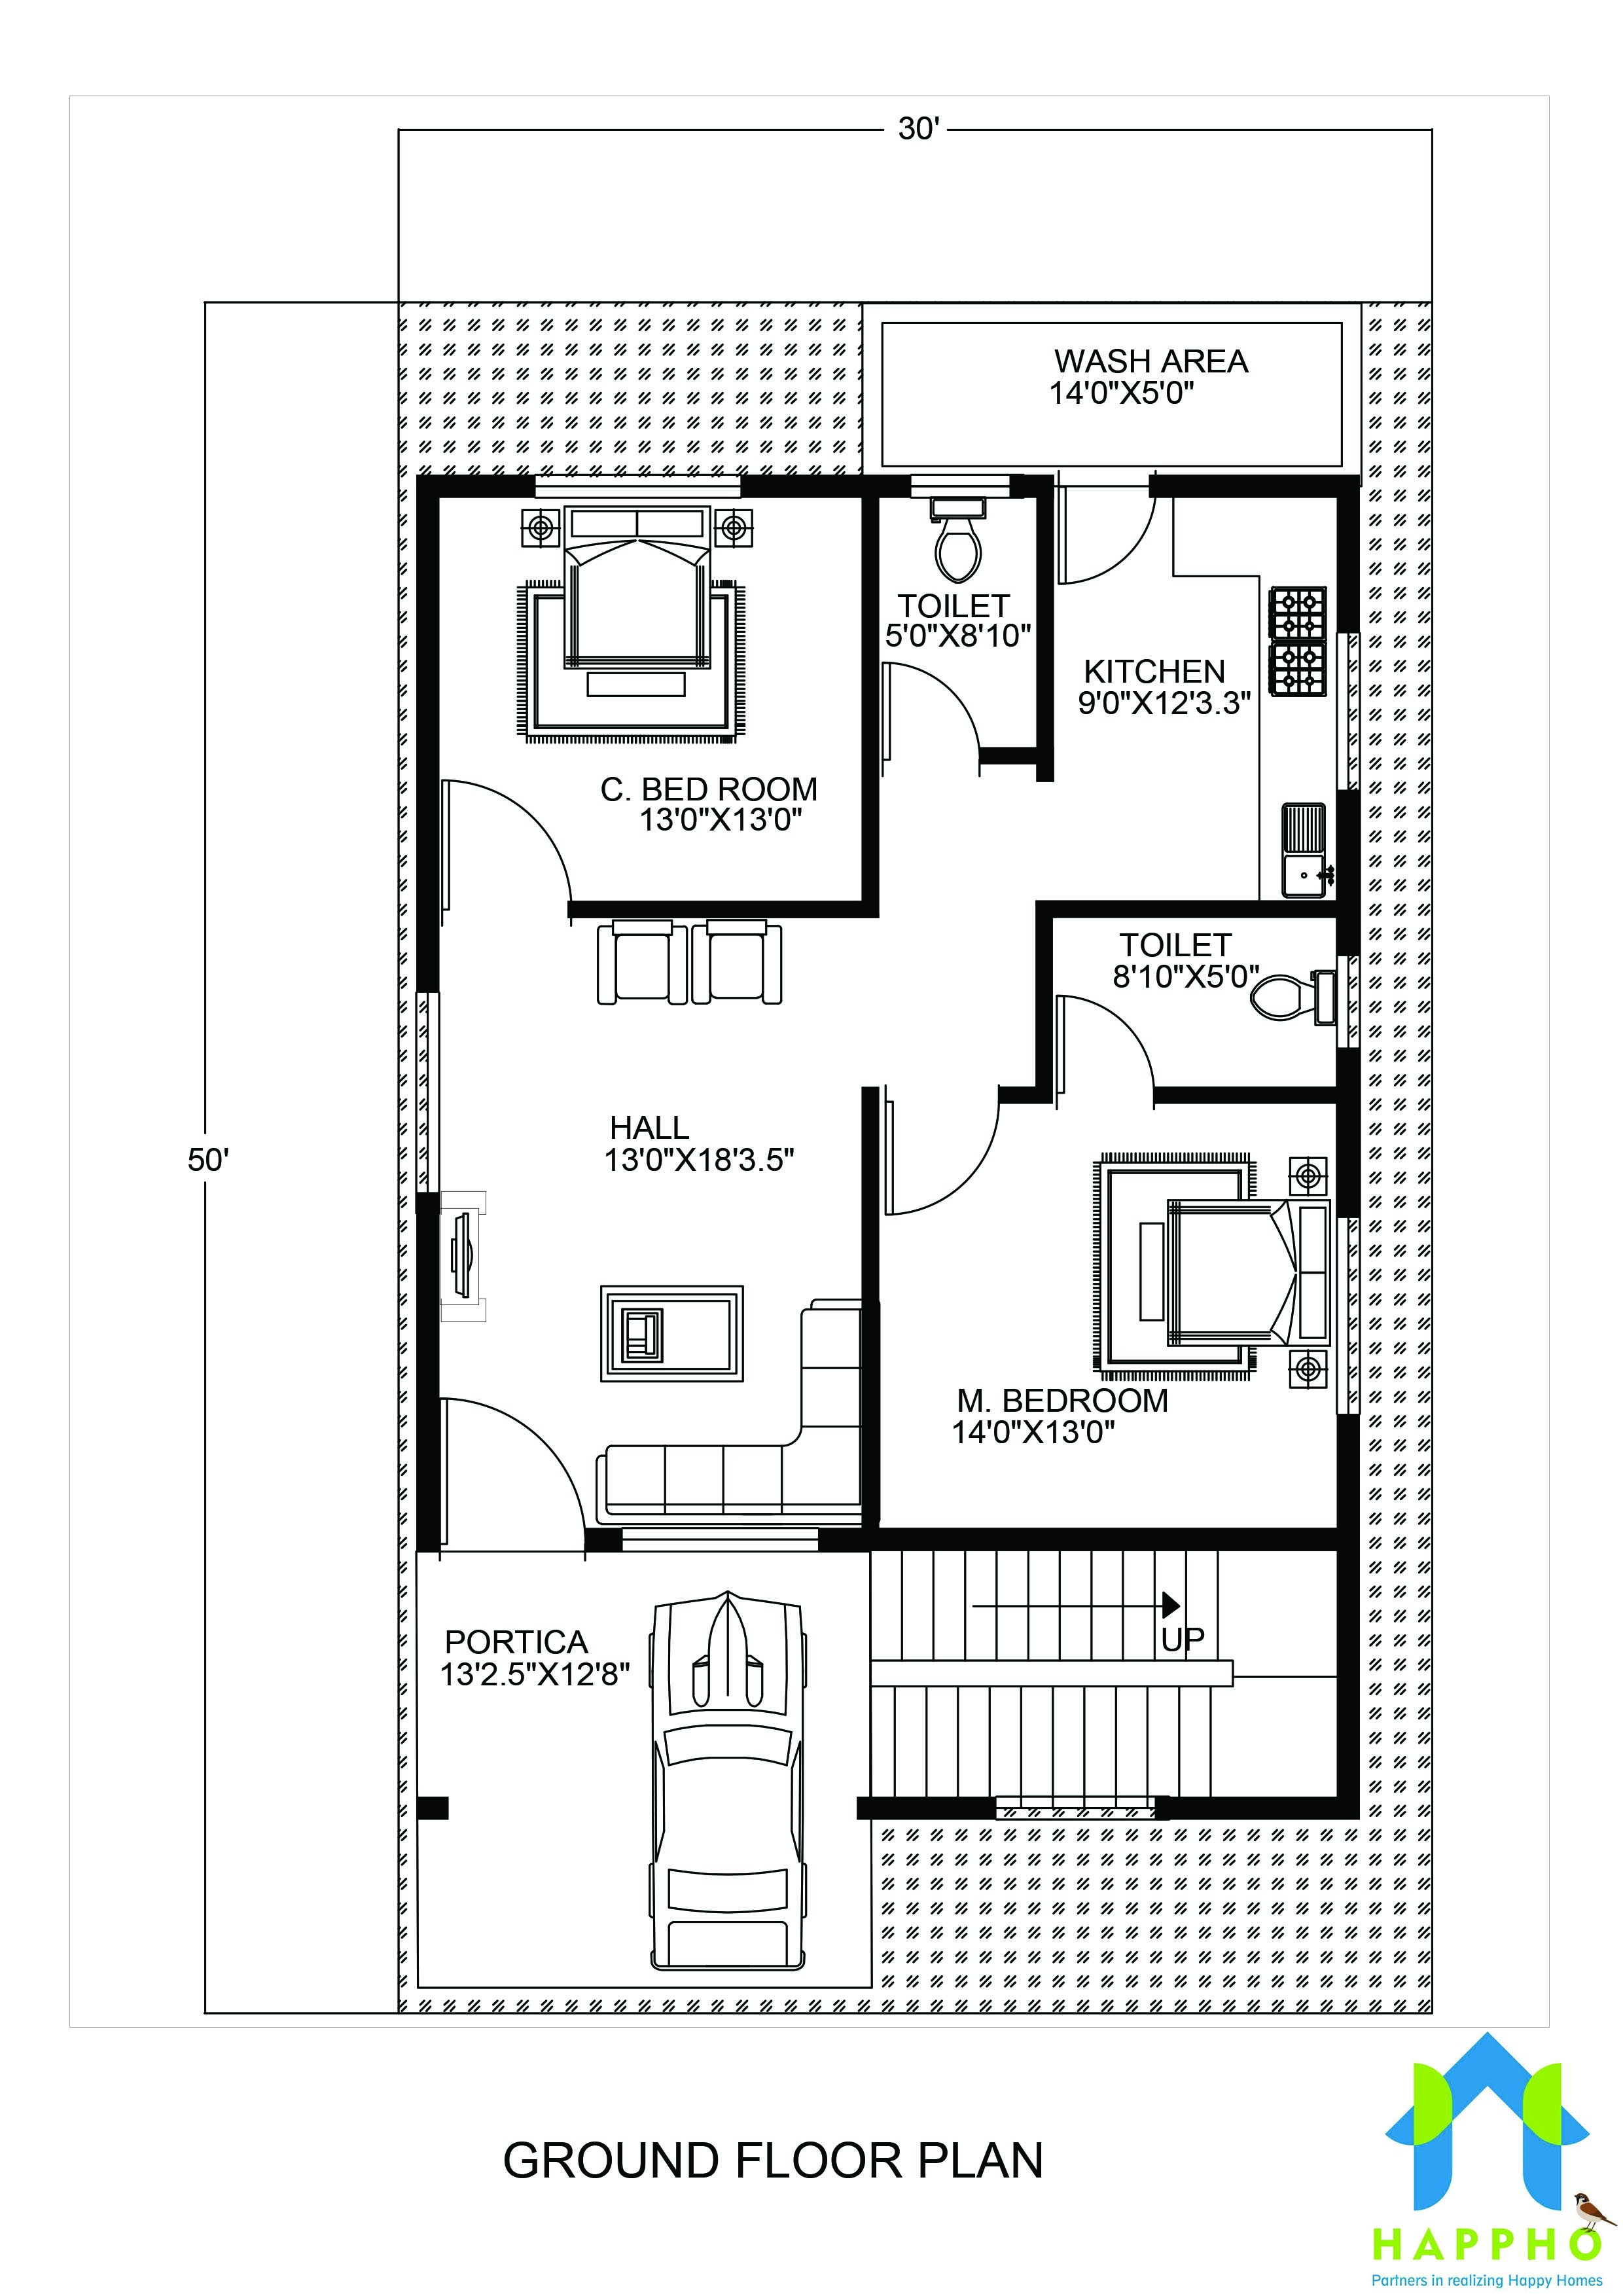 1 bhk floor plan for 20 x 45 feet plot 900 square feet for 2 bhk house plans 30x40